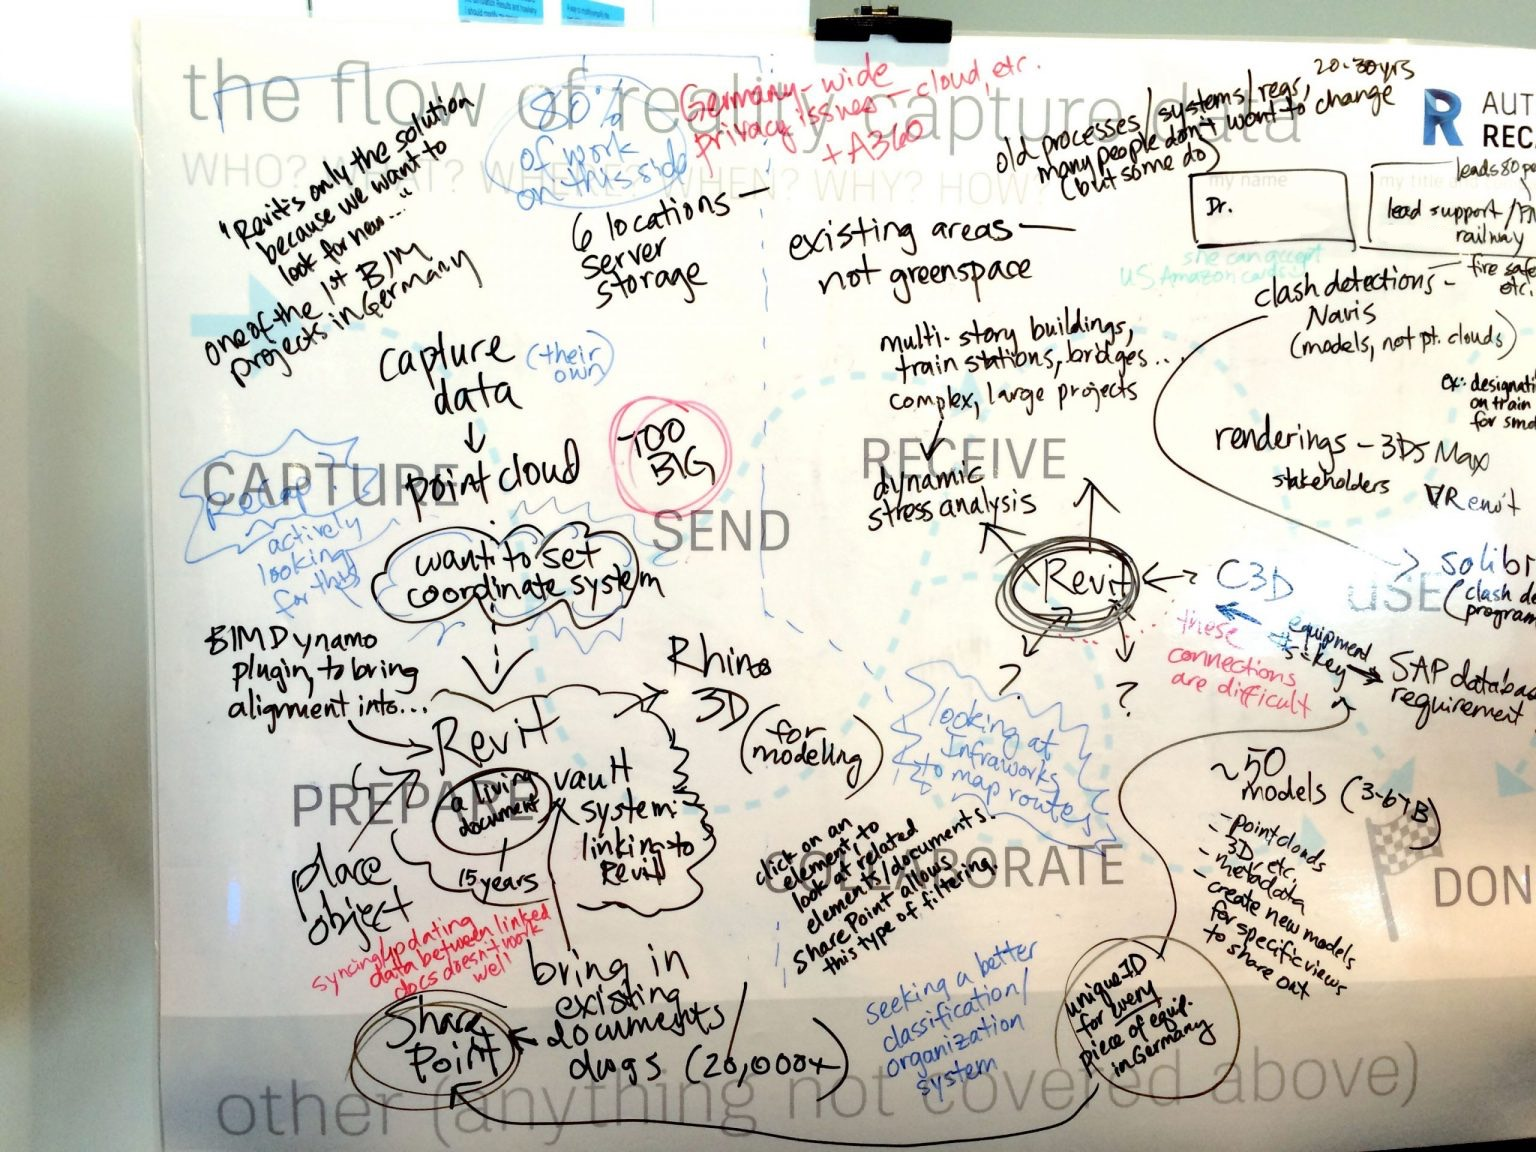 A photo of the whiteboard completely covered in whiteboard notes in 3 different colors, including arrows and bubbles.